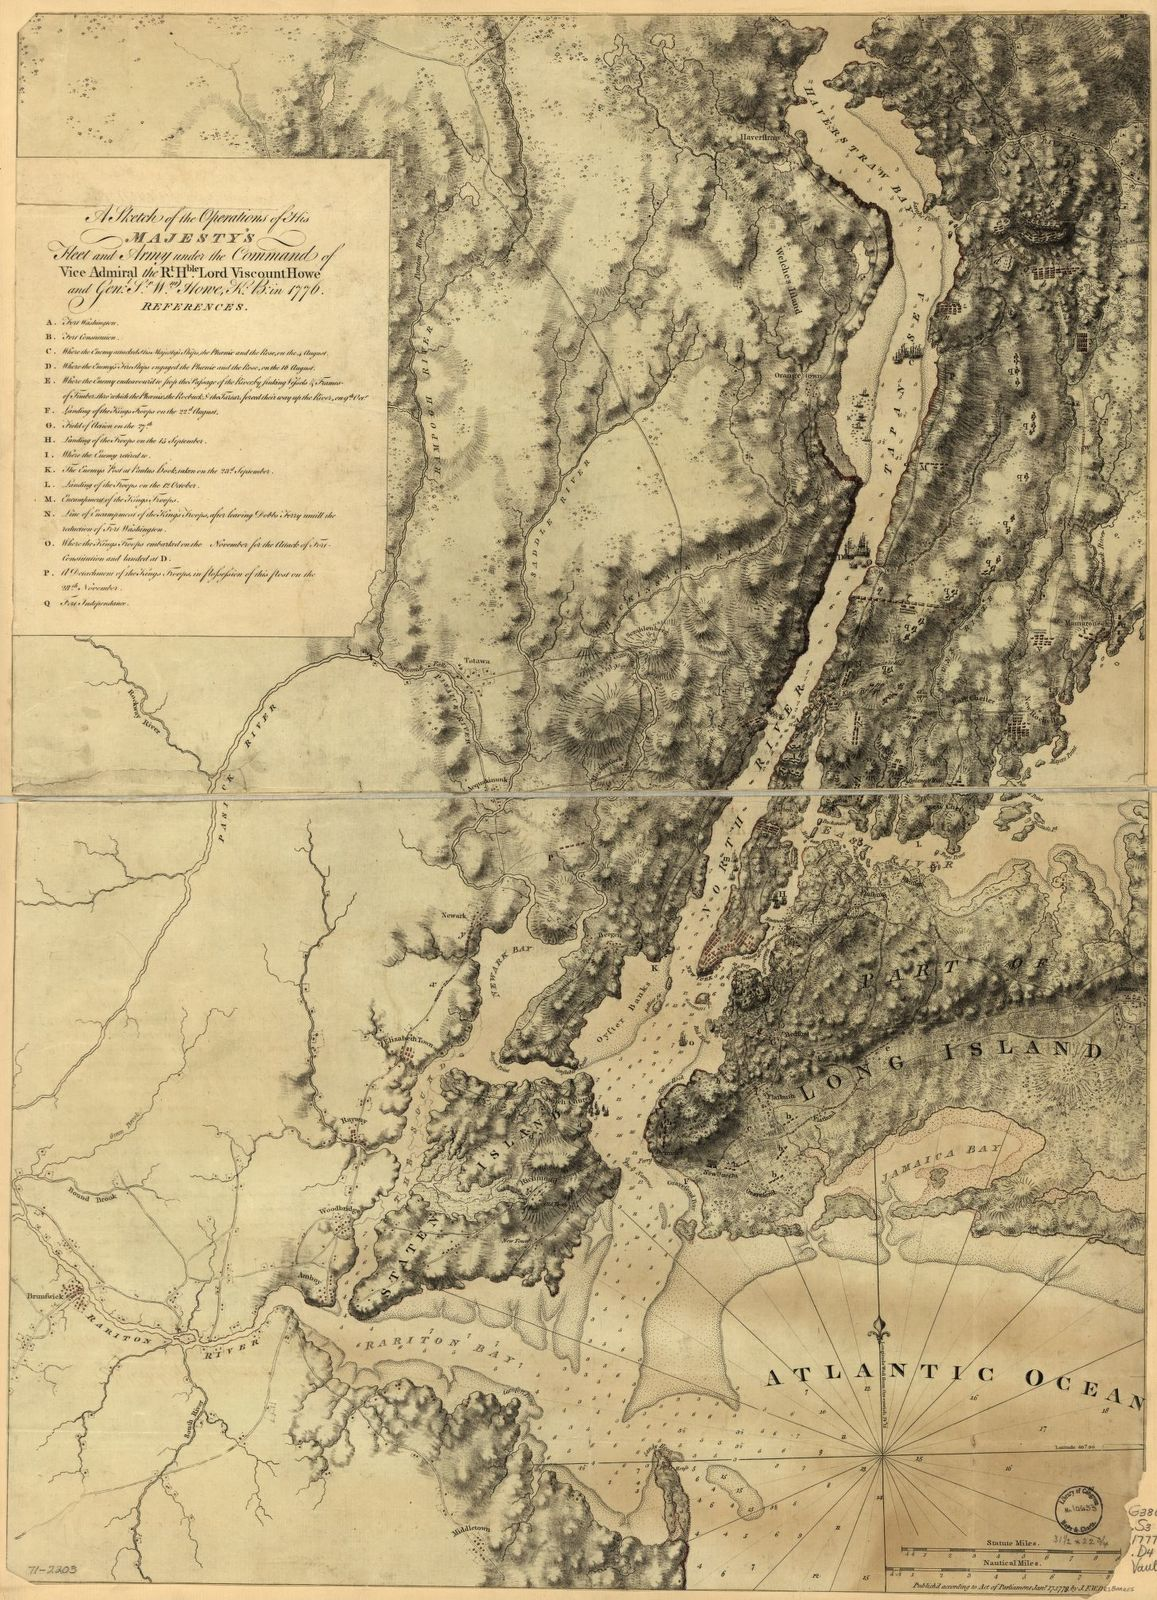 A sketch of the operations of His Majesty's fleet and army under the command of Vice Admiral the Rt. Hble. Lord Viscount Howe and Genl. Sr. Wm. Howe, K.B., in 1776.